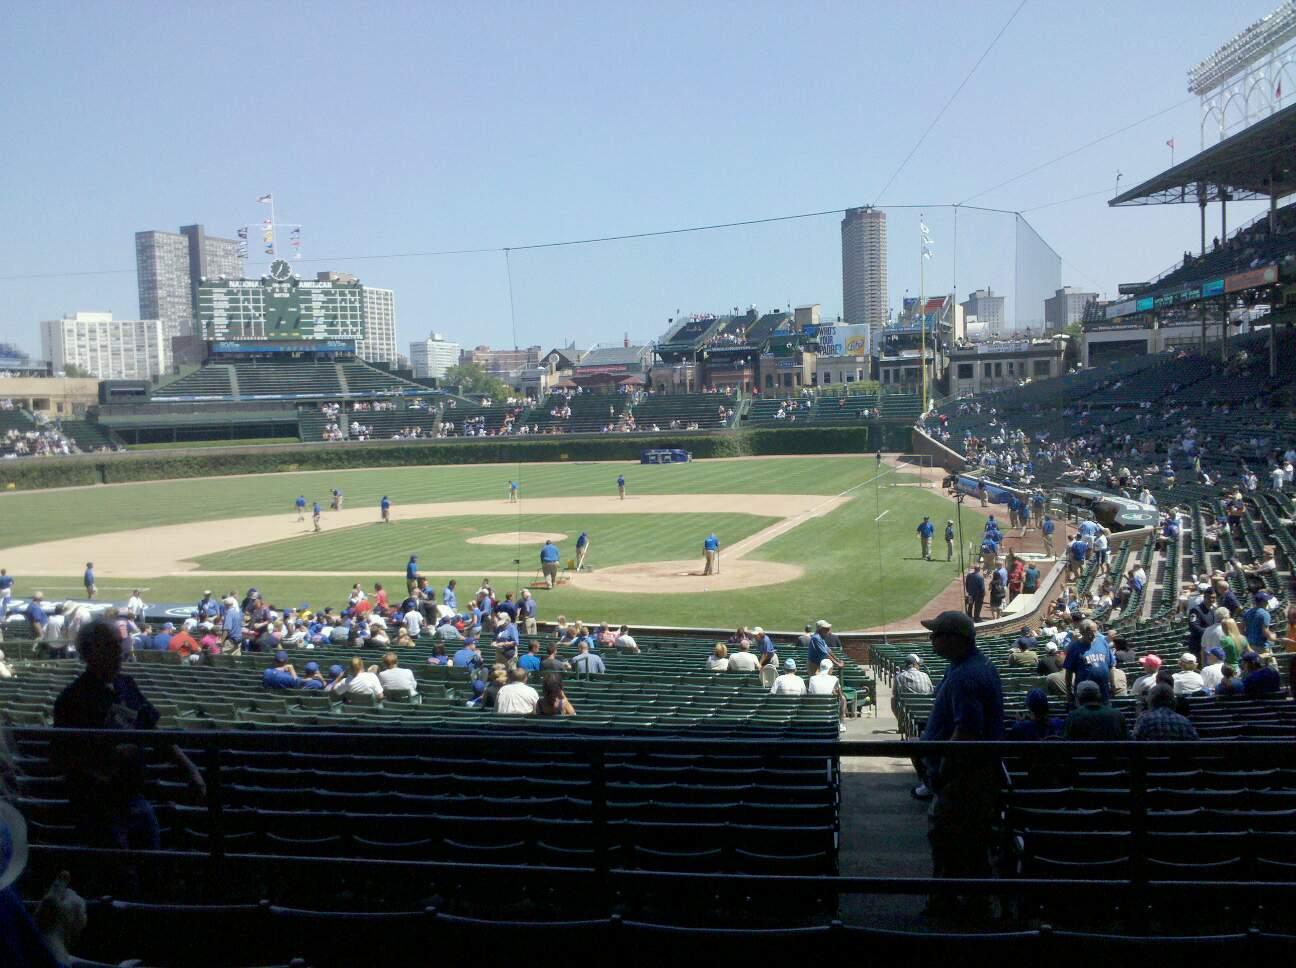 Wrigley Field Section 215 Row 5 Seat 10